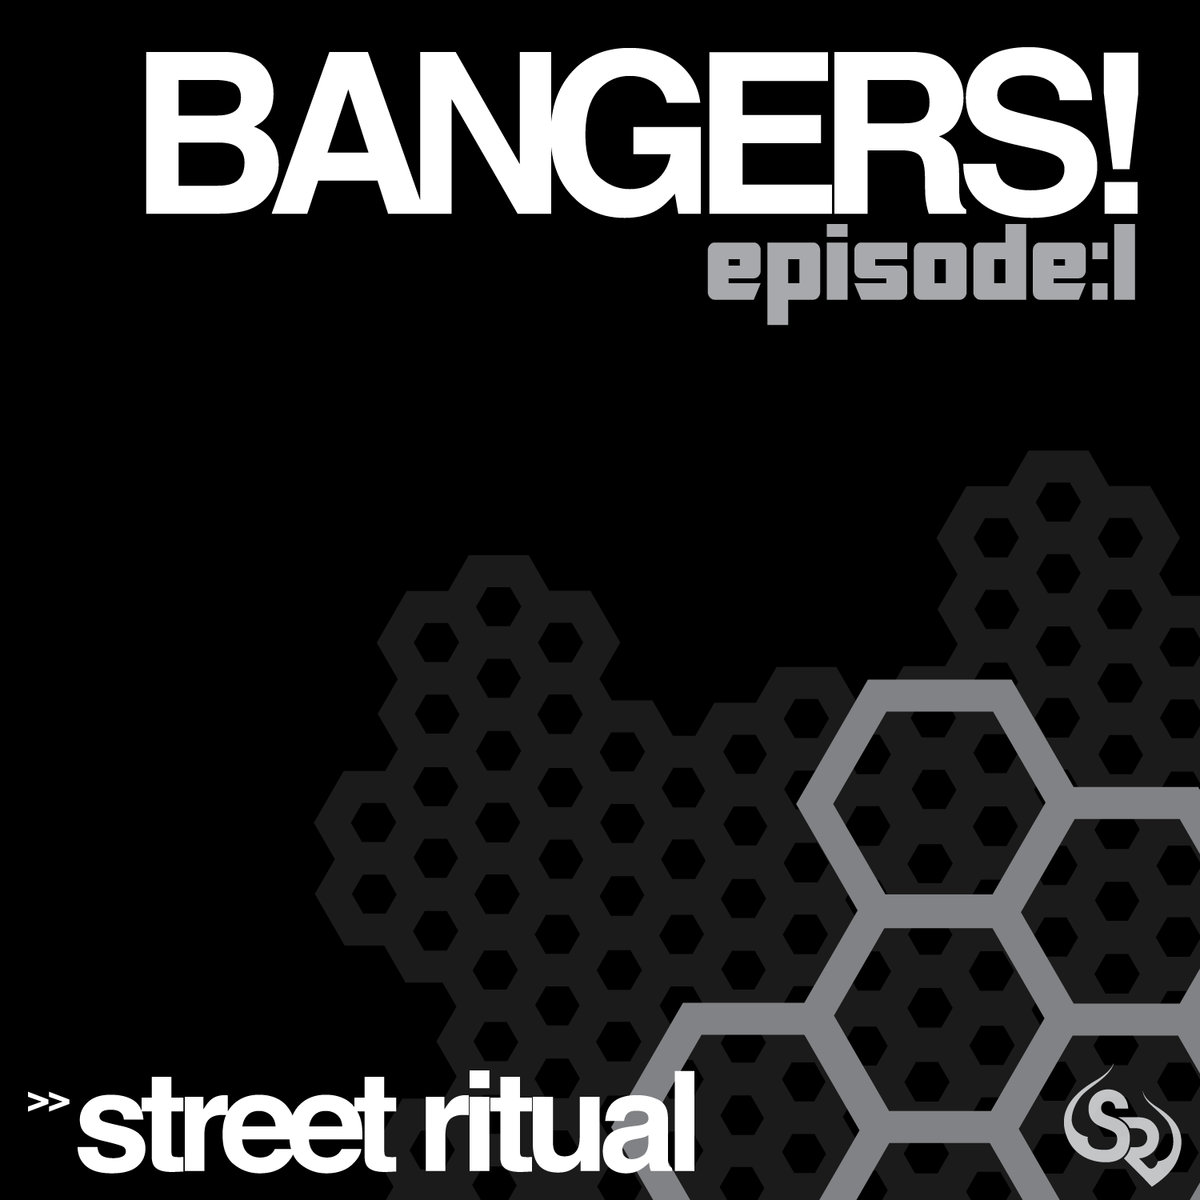 Deep City Culture - Take It Off @ 'Various Artists - Bangers! Episode:1' album (bass, electronic)